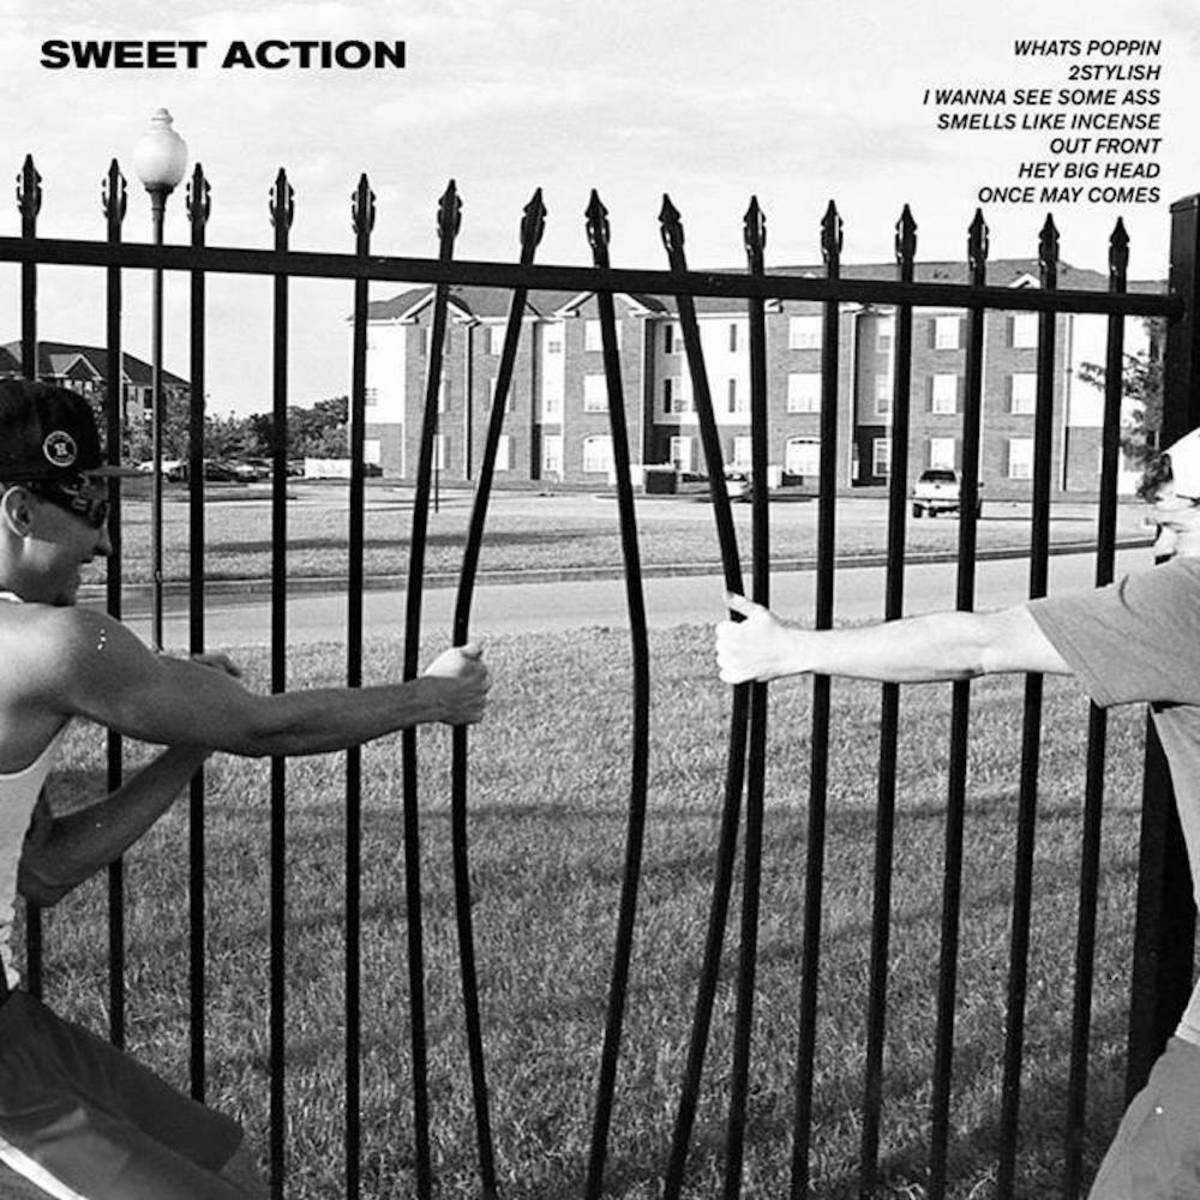 Listen to Jack Harlow's EP 'Sweet Action'